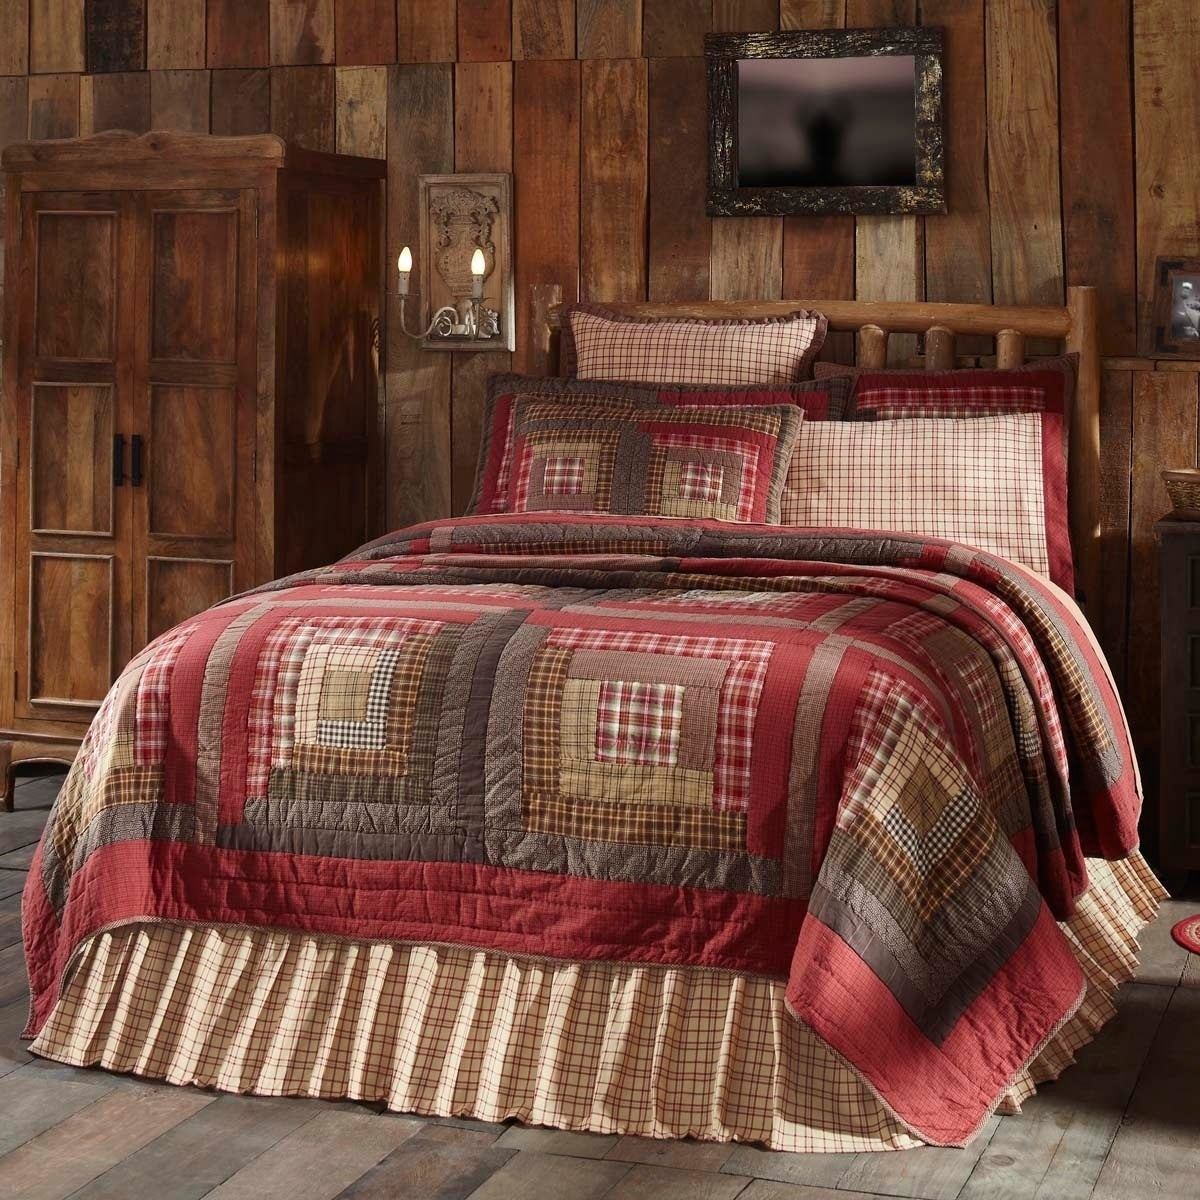 VHC Brands Tacoma Cotton Quilt (Shams Not Included) (Twin...